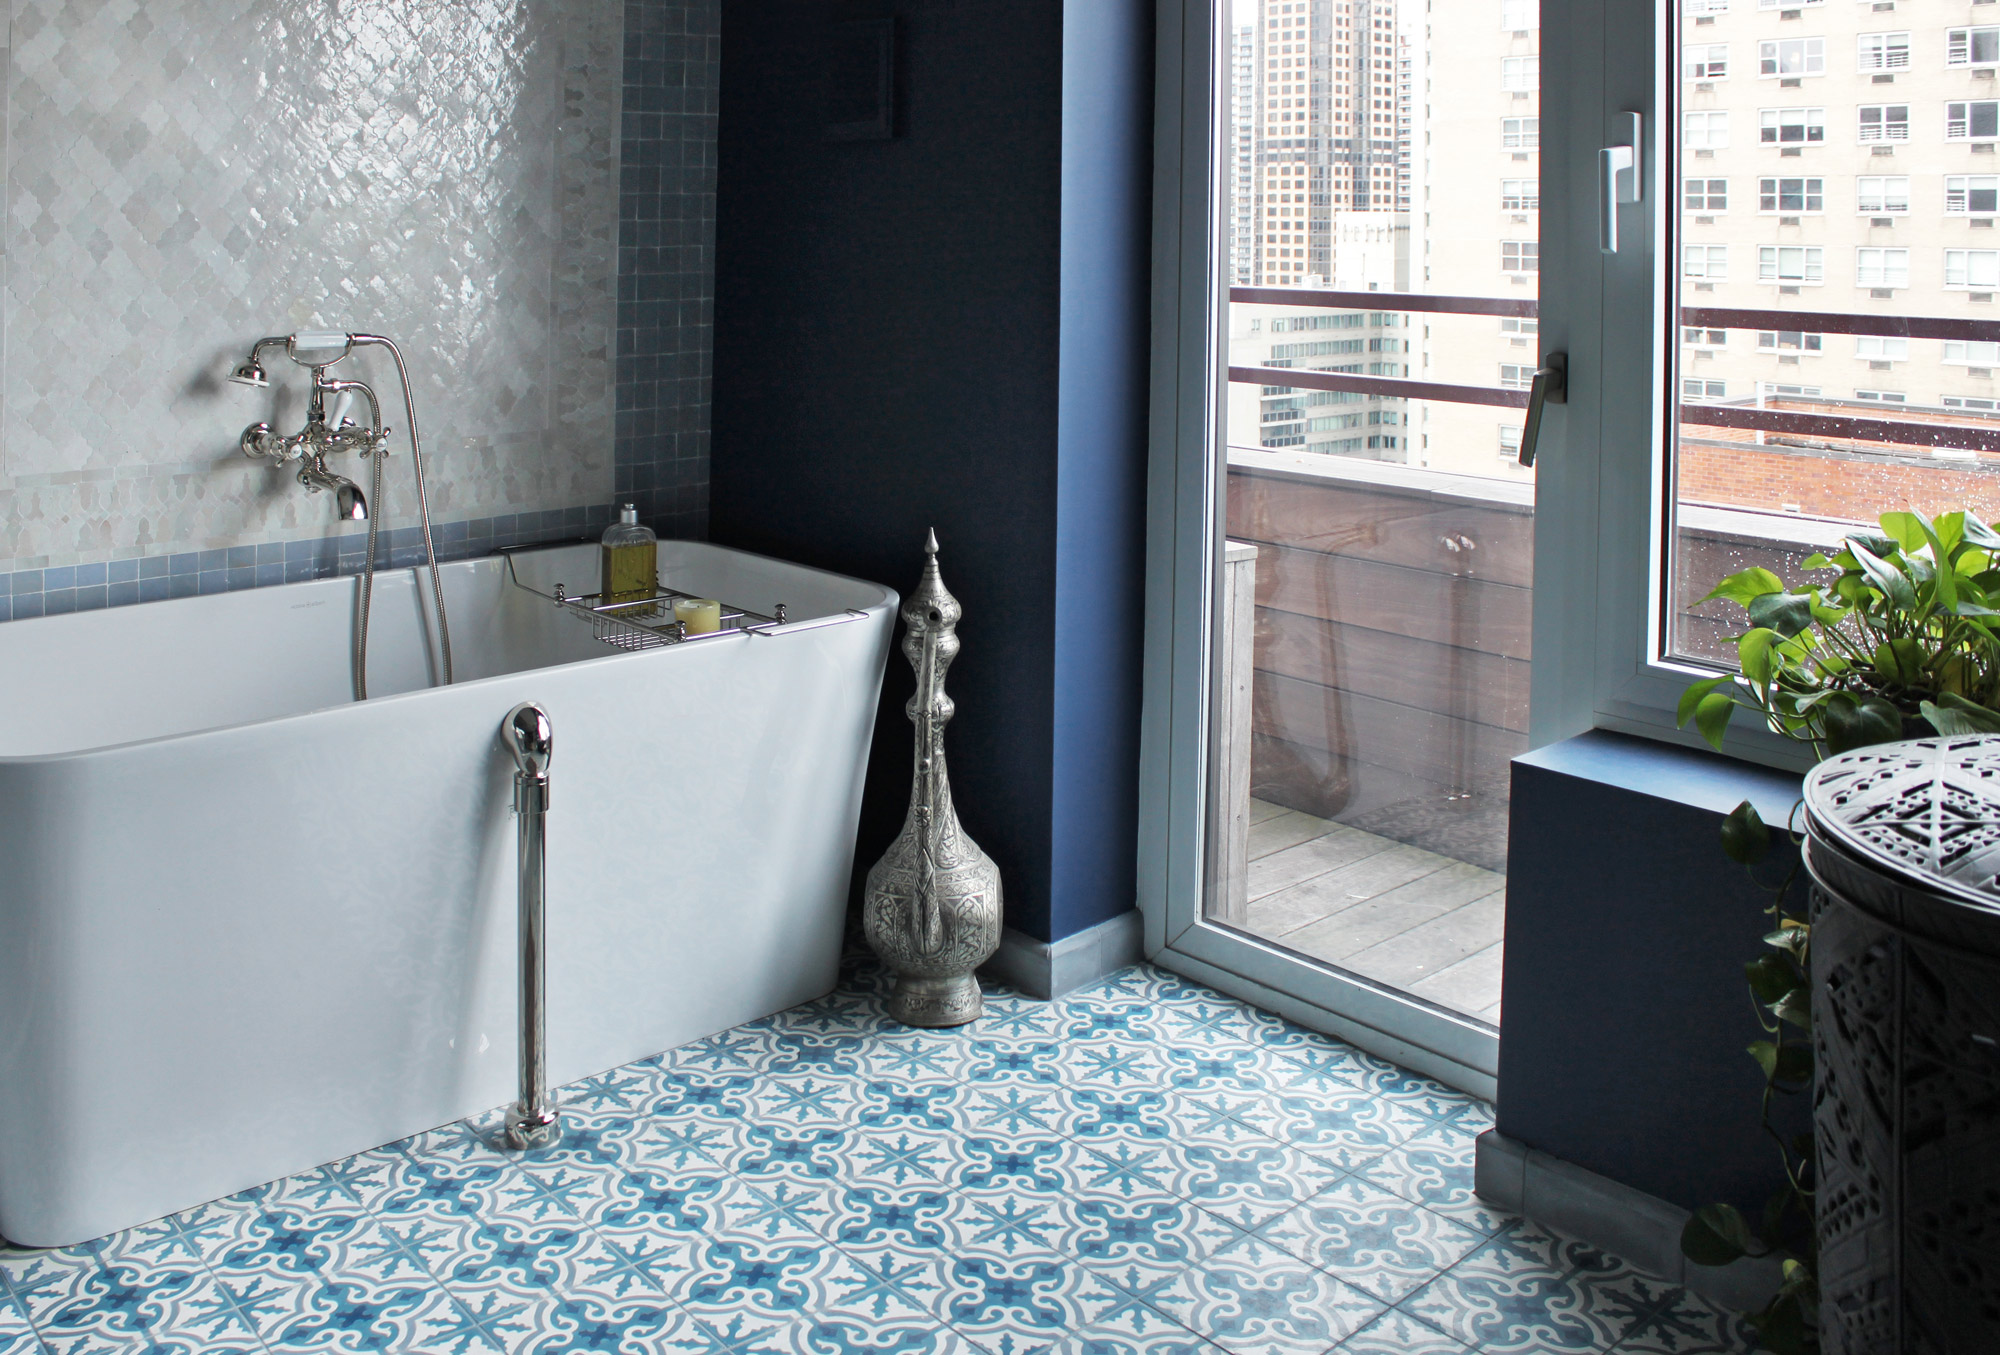 10 Gorgeous Ways to Do Patterned Tile in the Bathroom